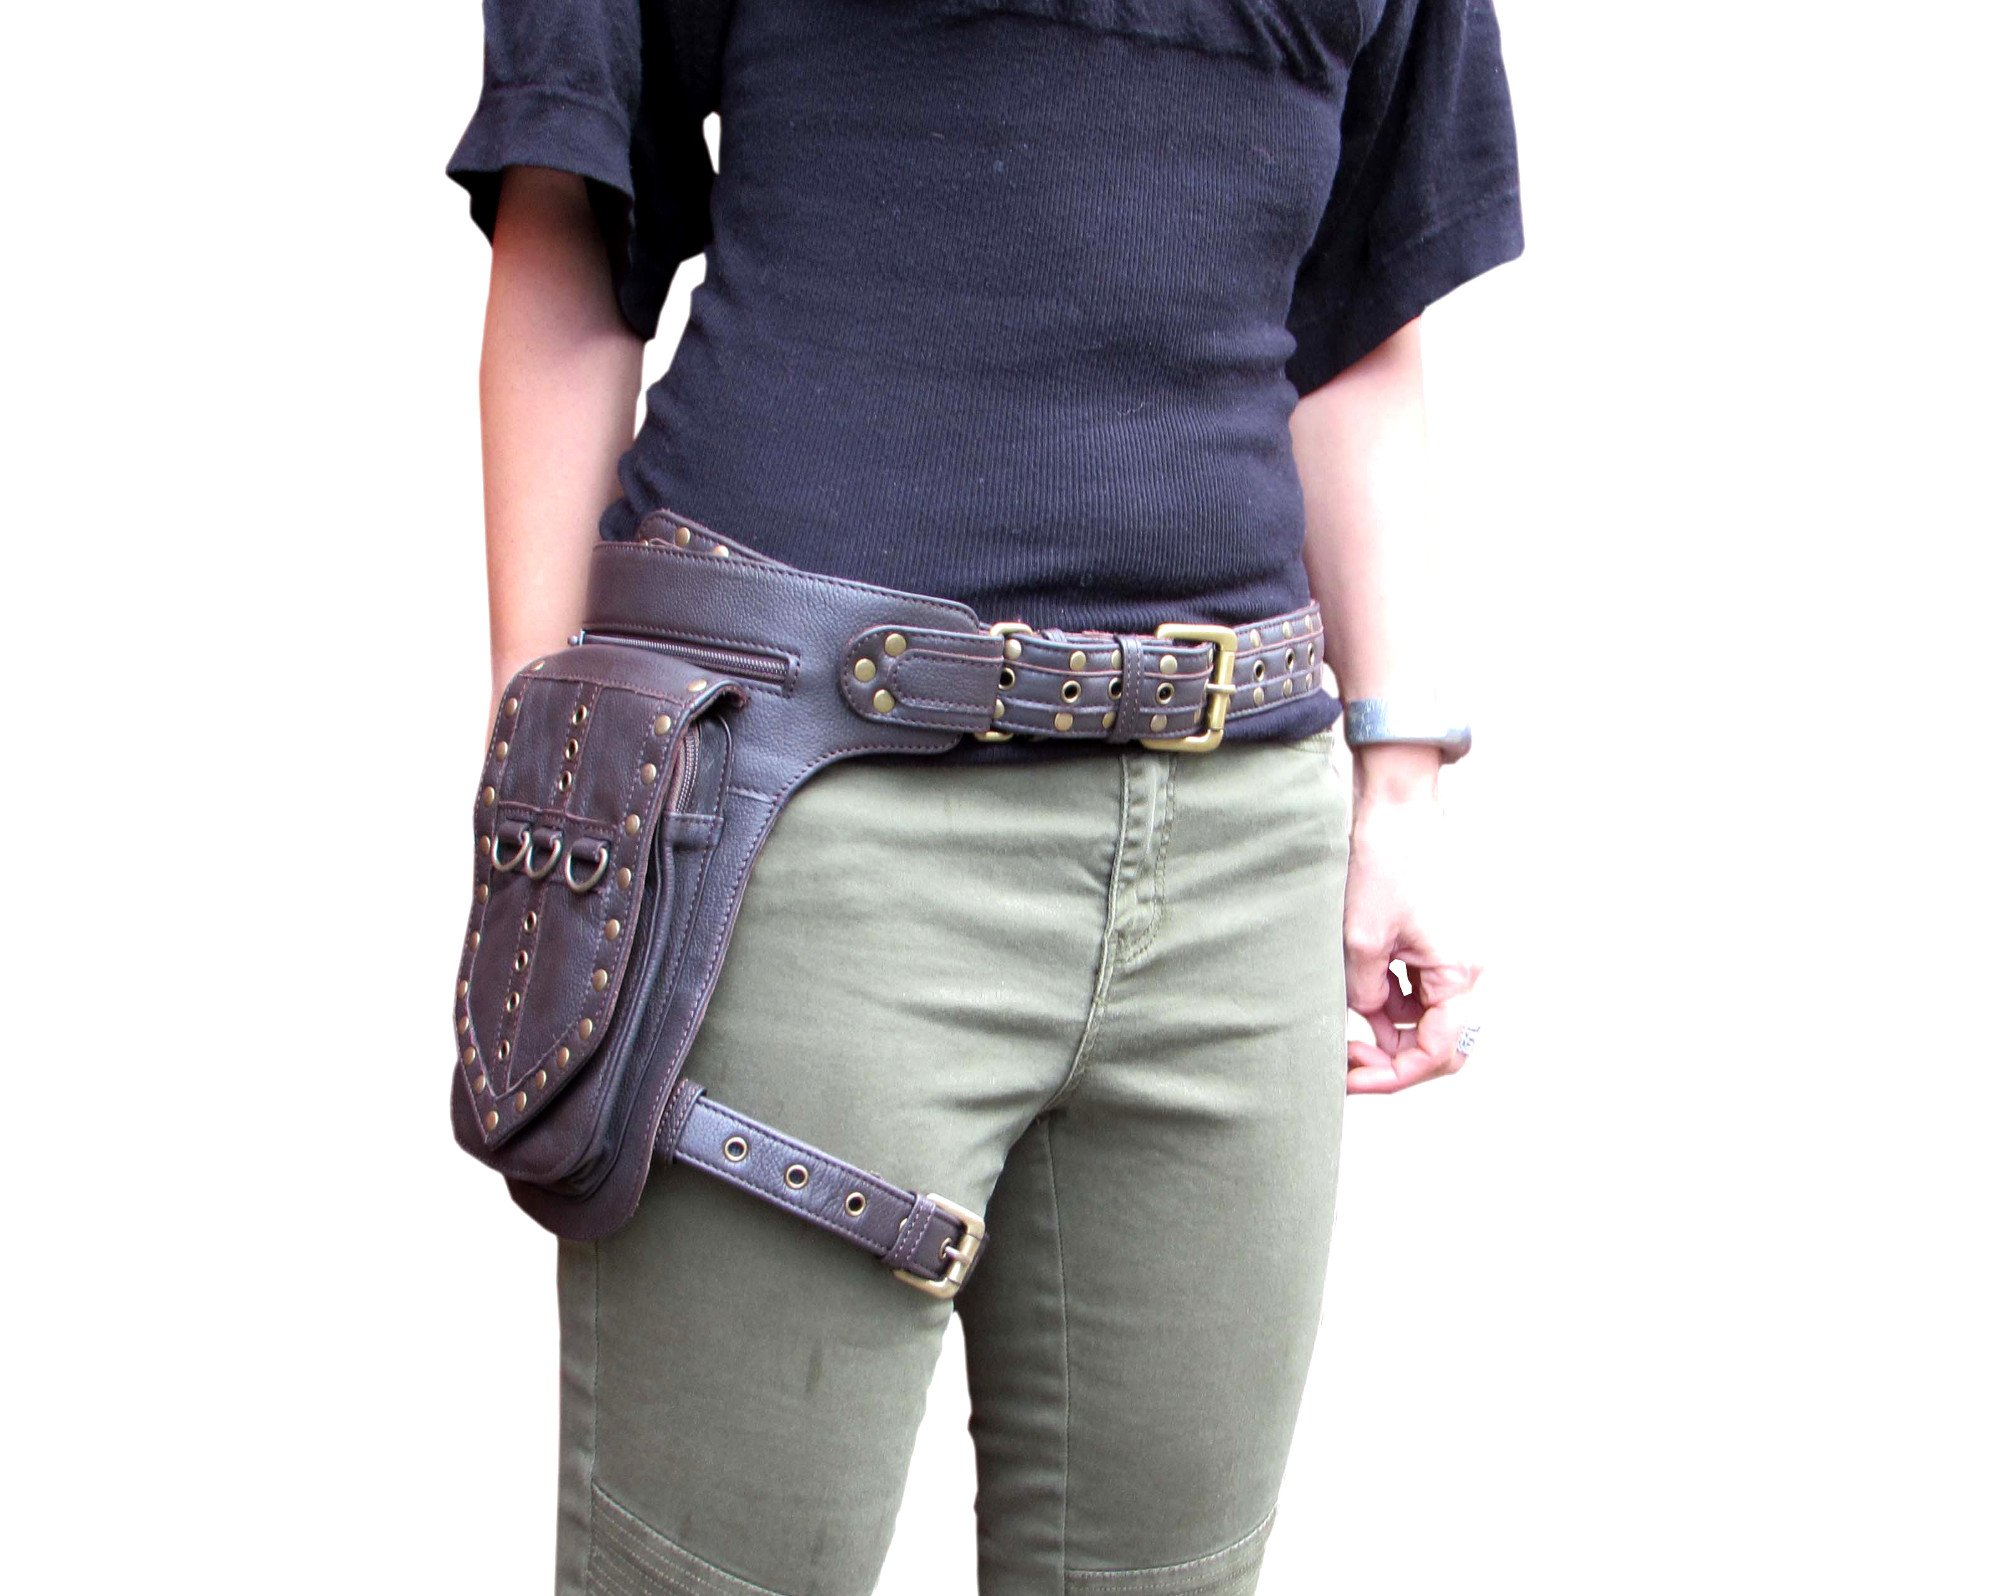 One Leaf Leather Leg Holster Utility Belt Thigh Bag (Medium Brown) by Oneleaf